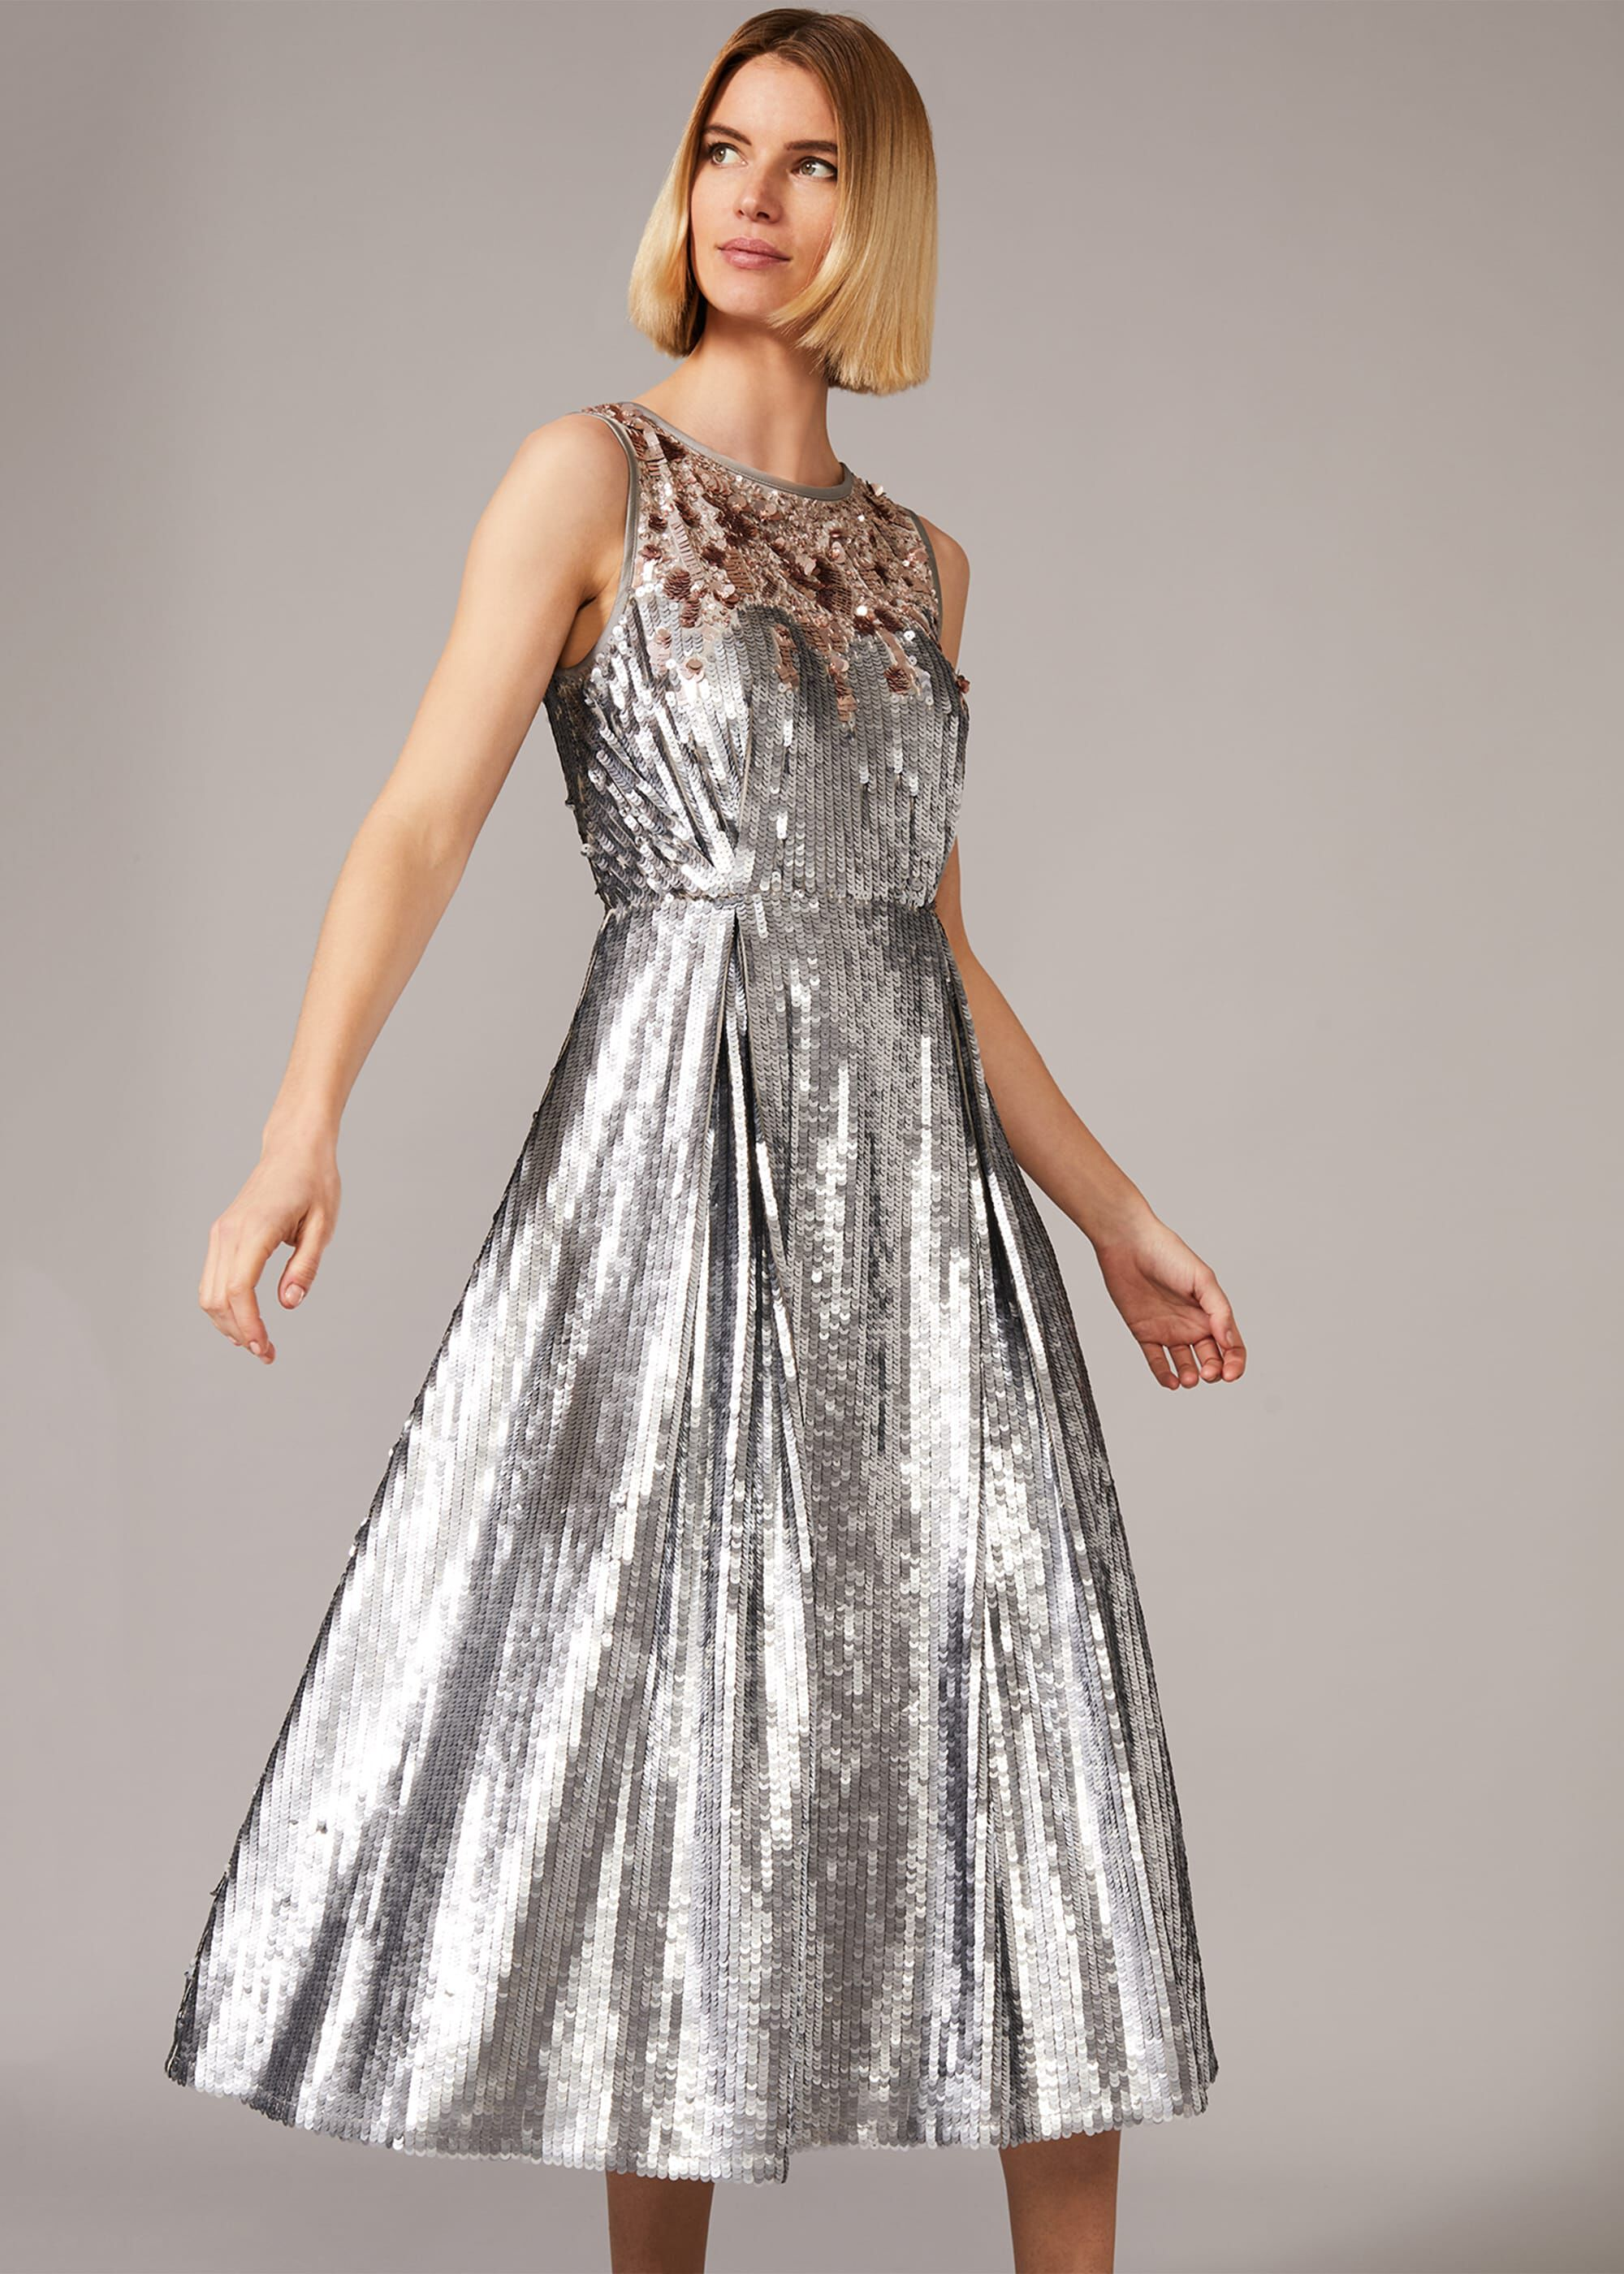 Phase Eight Lainey Shimmer Sequin Midi Dress, Metallic, Fit & Flare, Occasion Dress